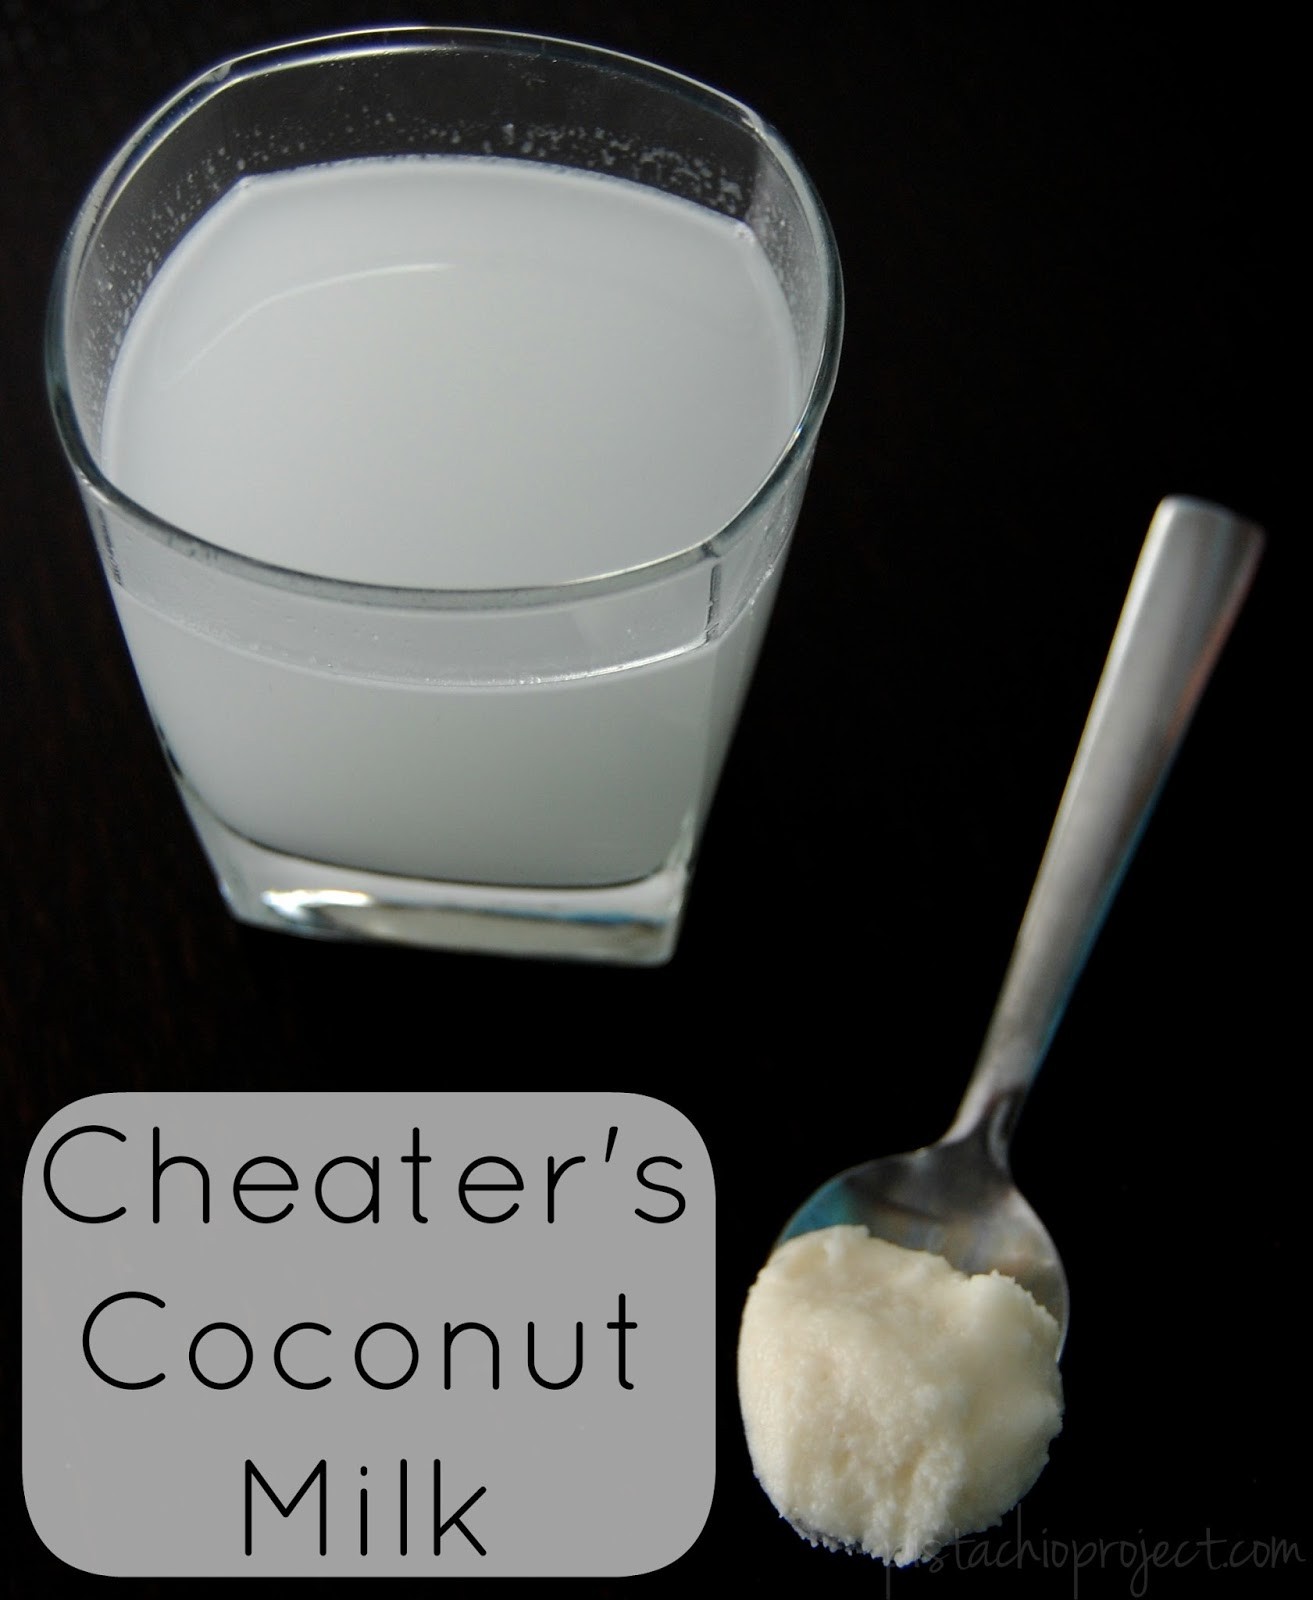 Cheater's Coconut Milk - Coconut milk that you can make in just a few seconds! #coconutmilk #coconut #nondairy #fast #easy